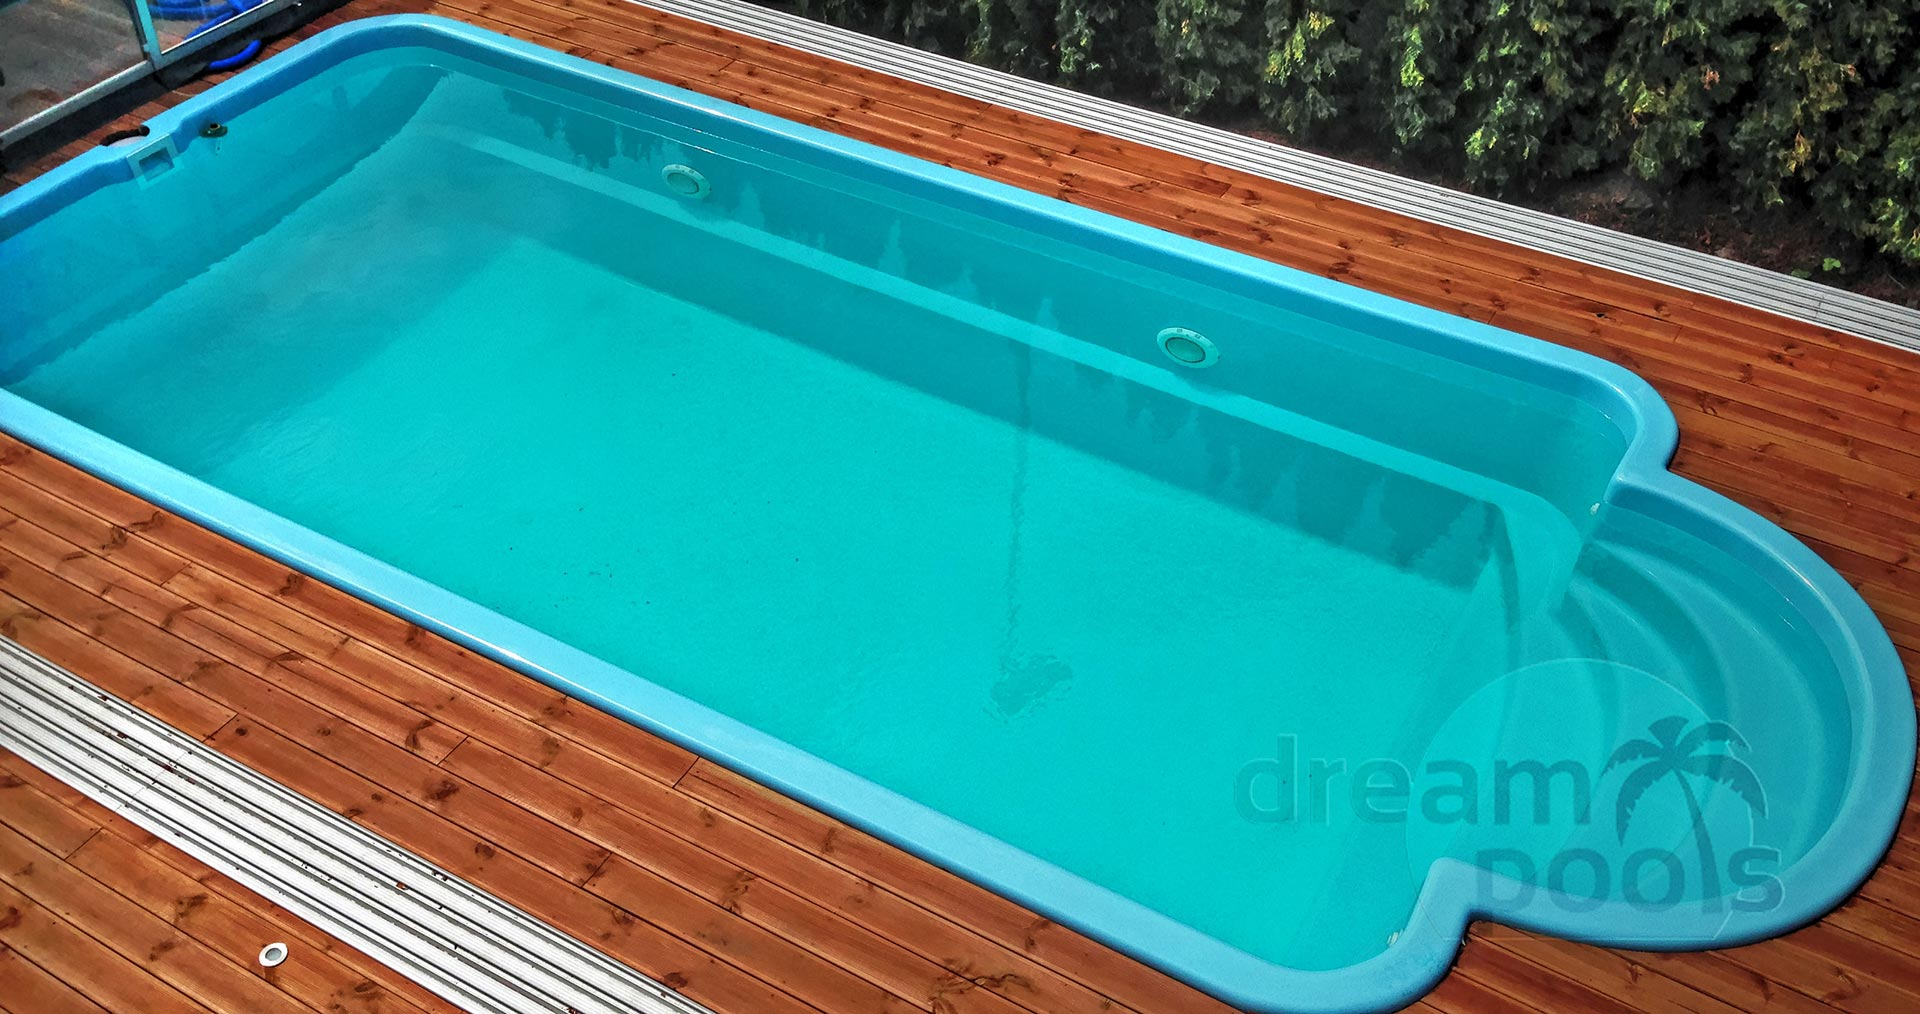 Dreampools nos piscine coque en poliester projets for Piscine polyester